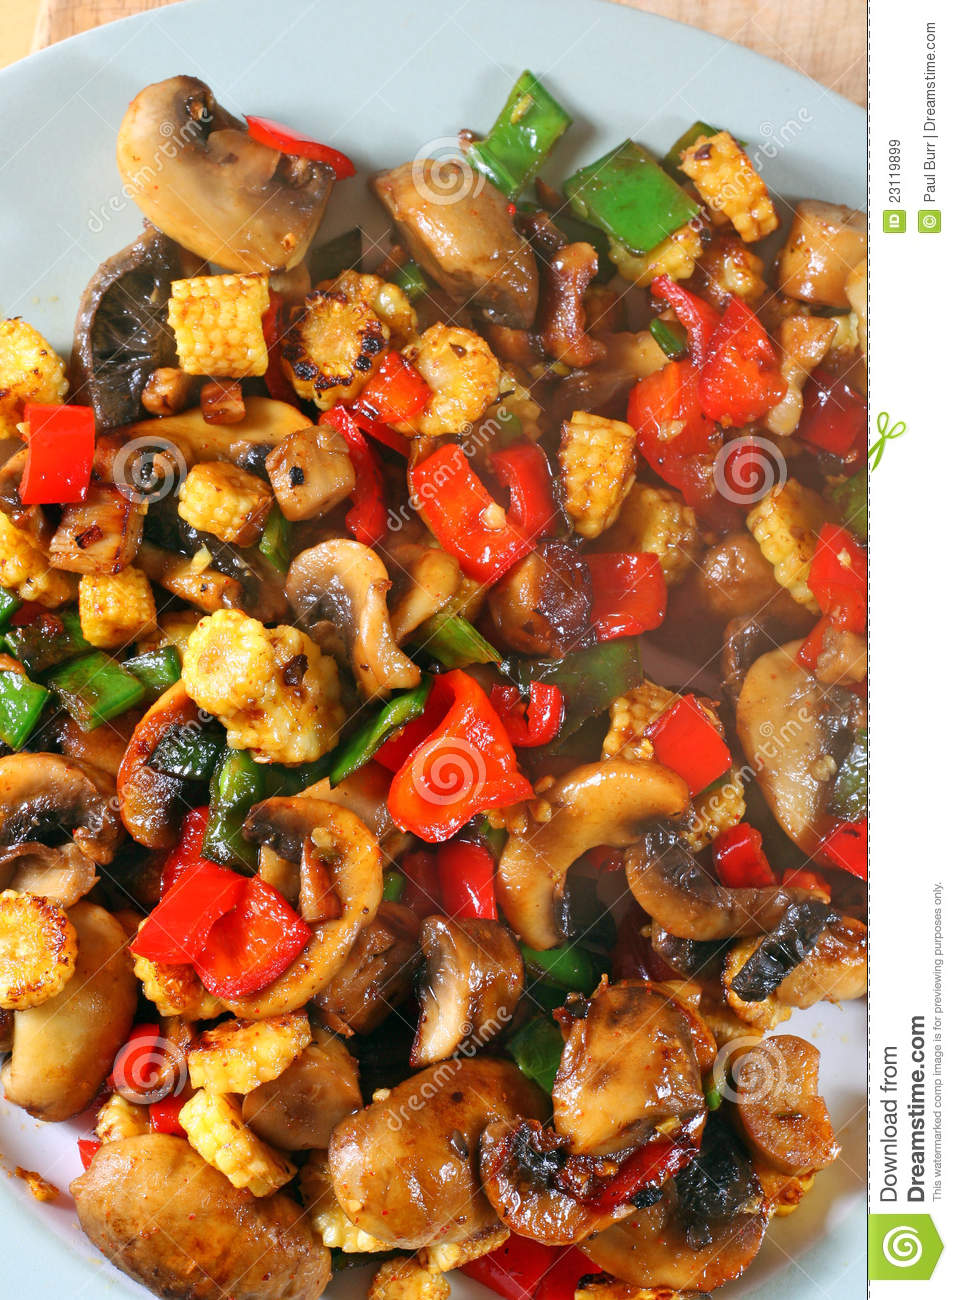 Download Cooked Stir Fry Vegetables-Healthy Concept. Stock Image - Image of mange, vegetables: 23119899